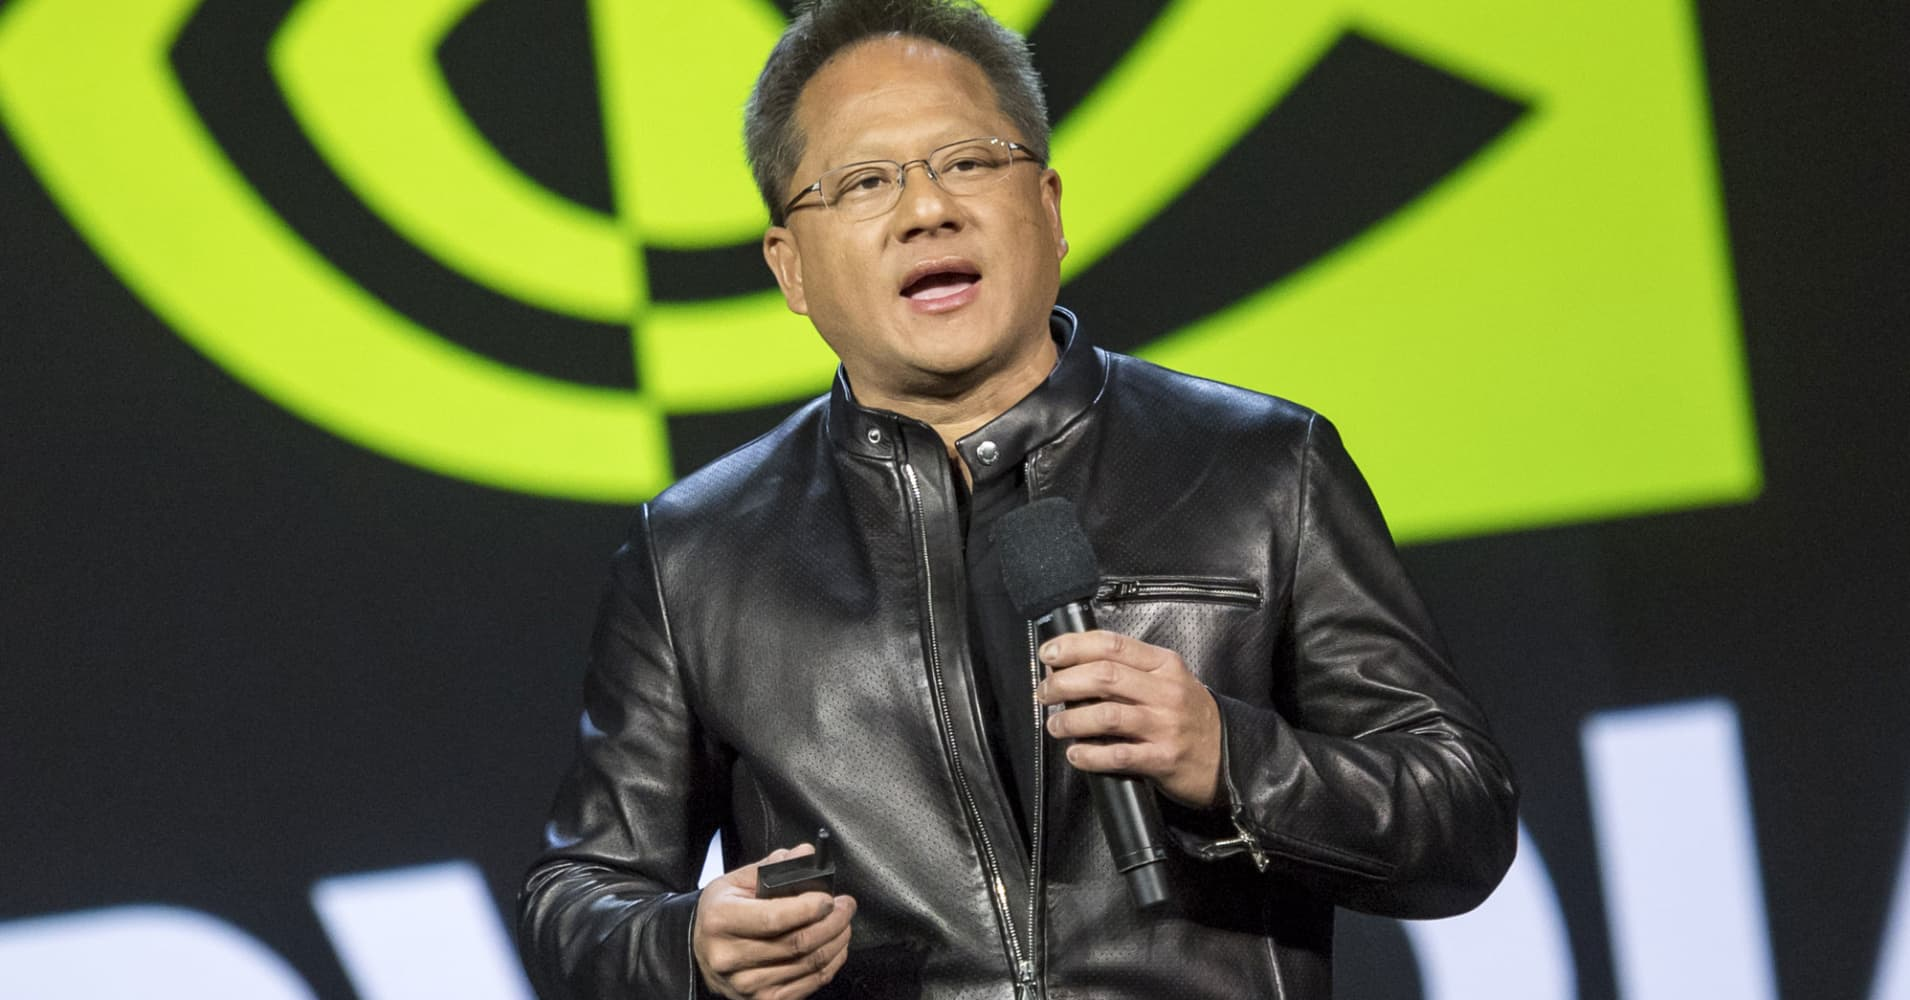 Nvidia is falling again as analysts bail on once-loved stock: 'This becomes a show me story'